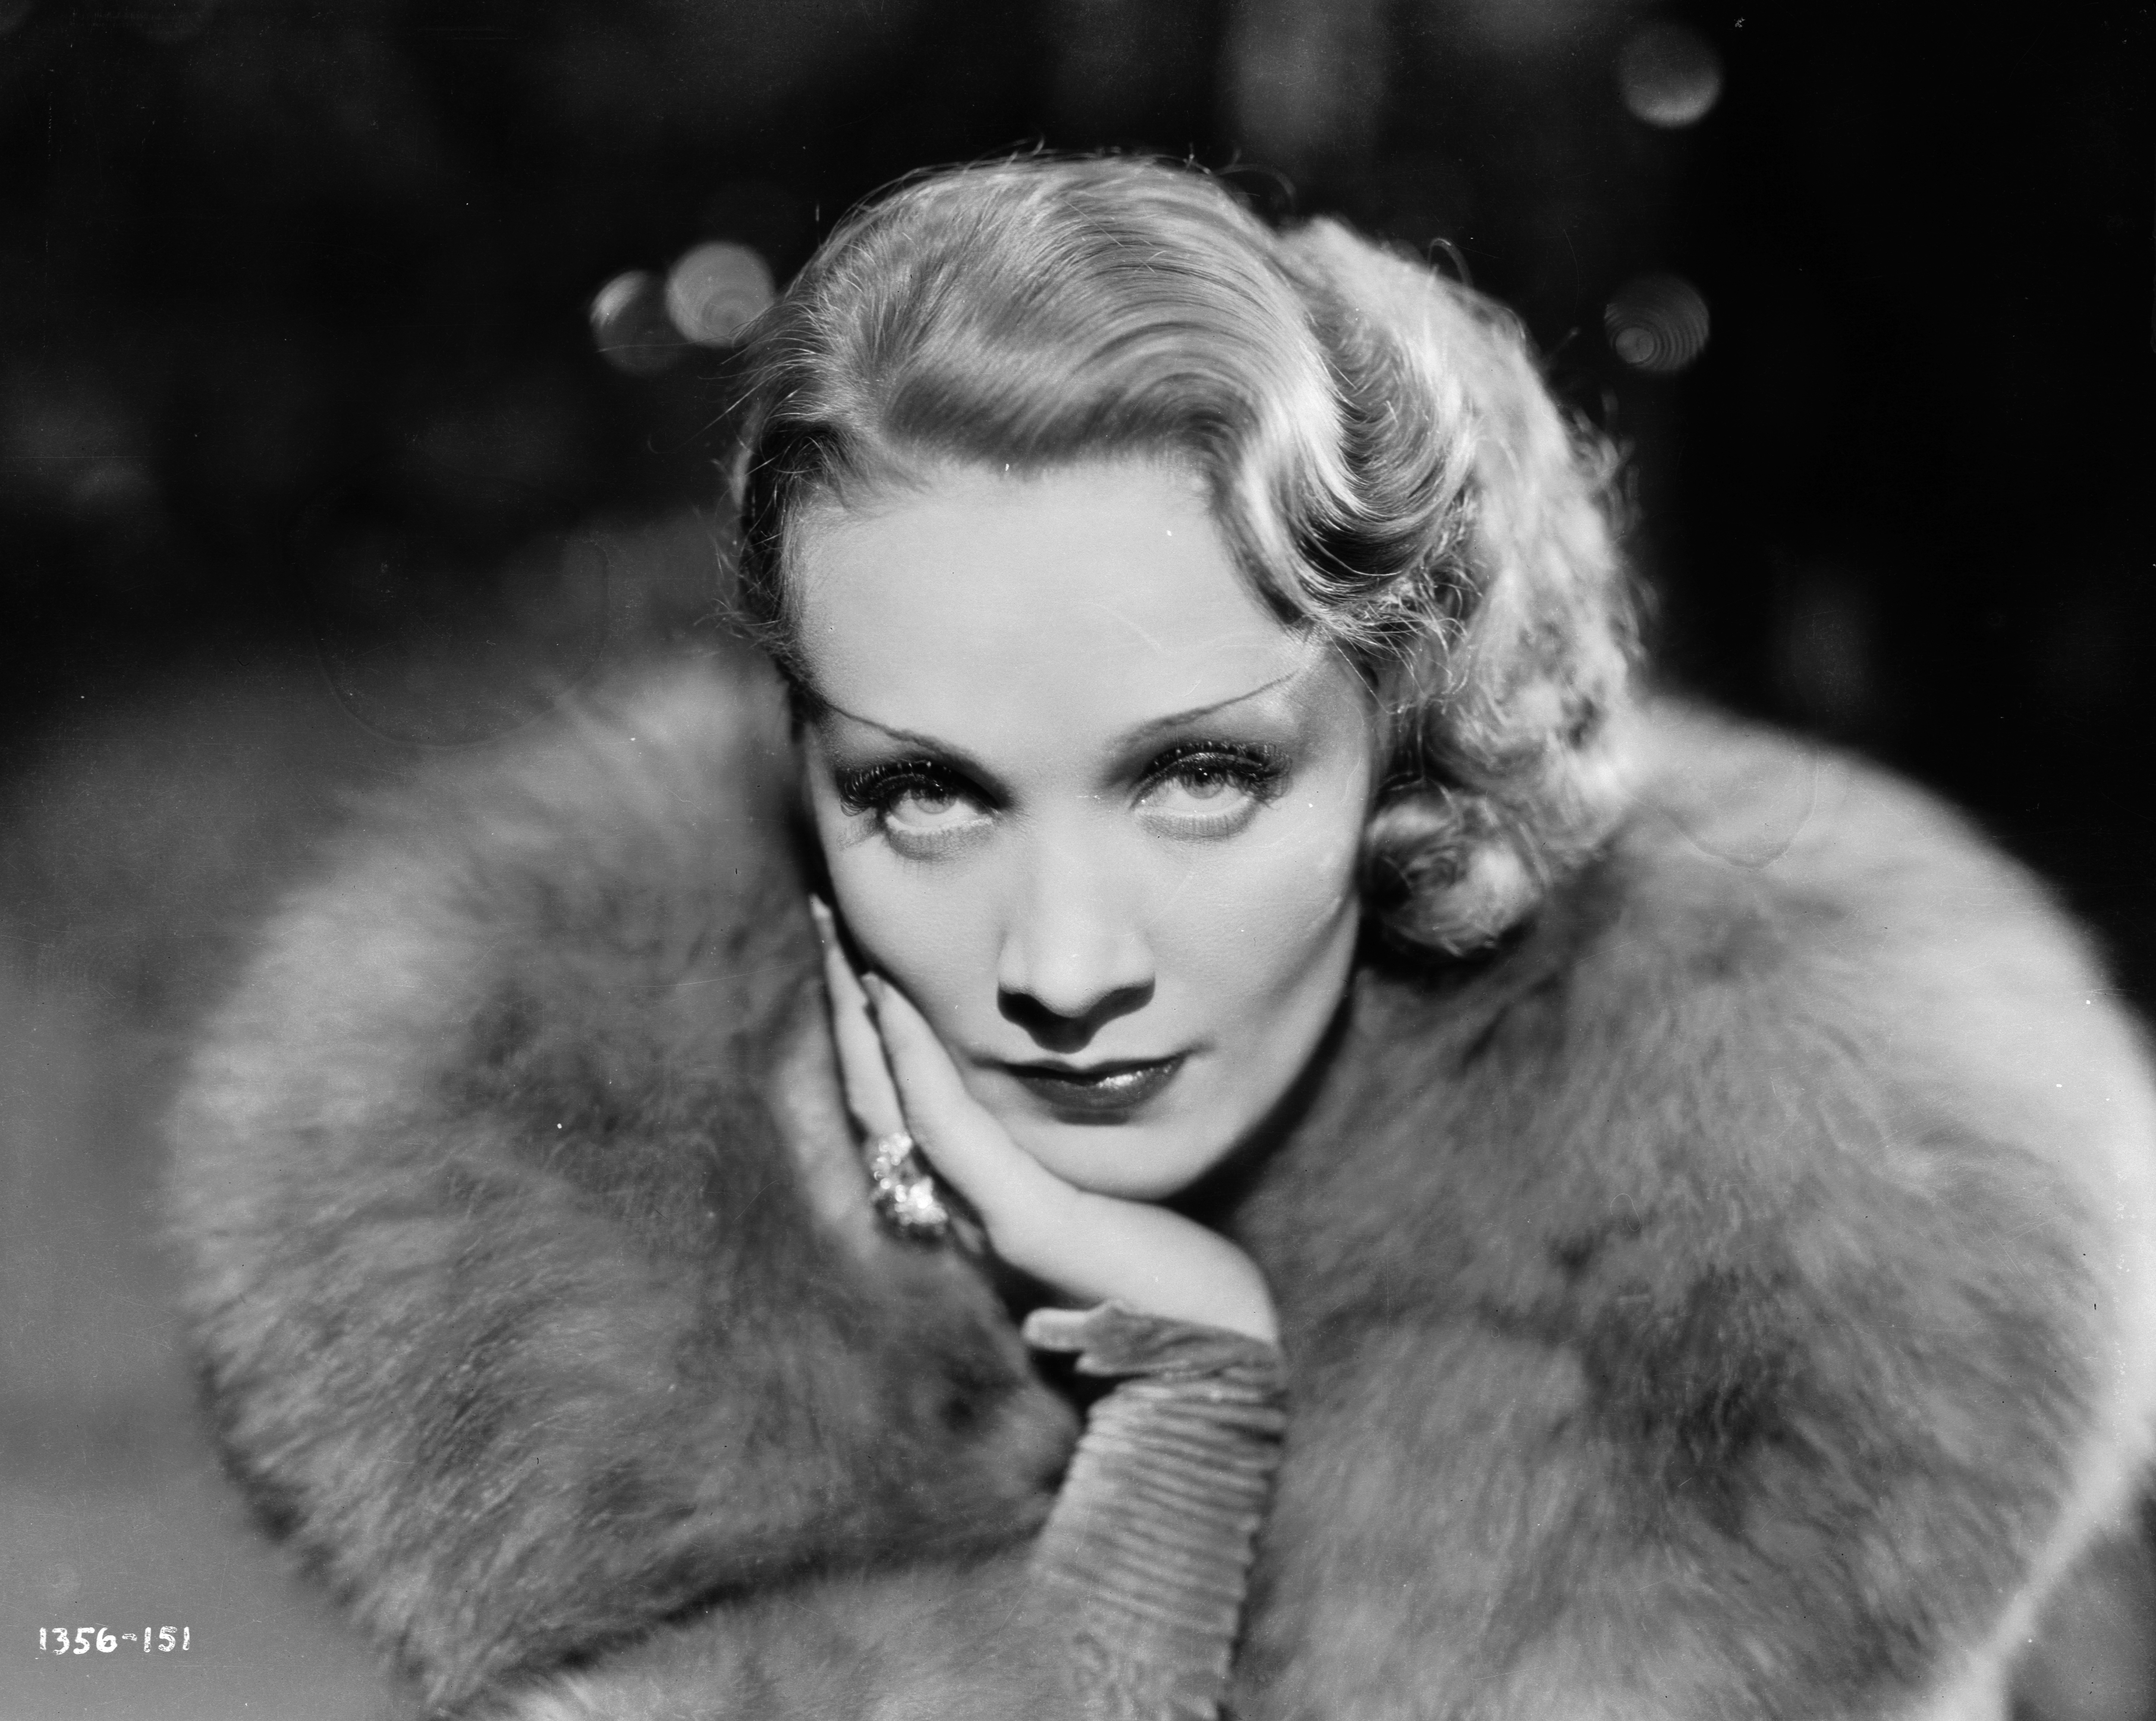 Marlene Dietrich as Madeline or Shanghai Lily in the film 'Shanghai Express', directed by Josef von Sternberg.